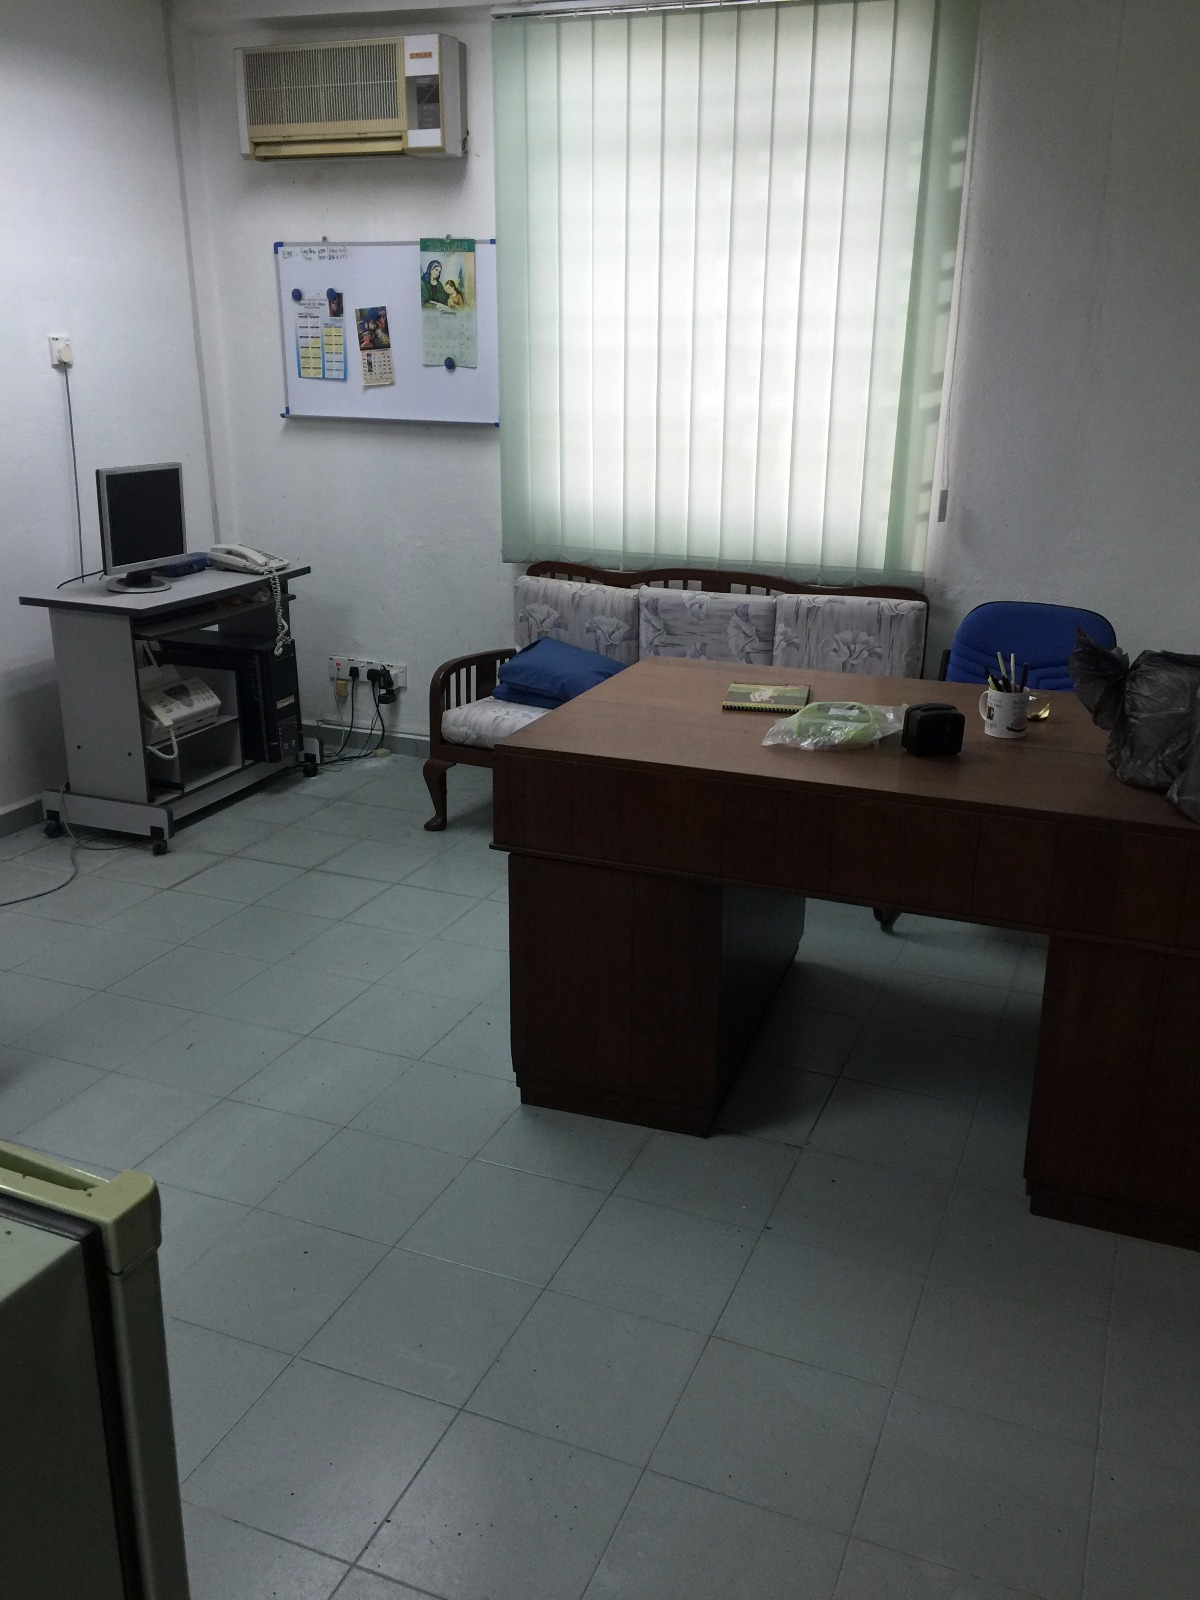 balik-pulau-clinic-for-sale-1